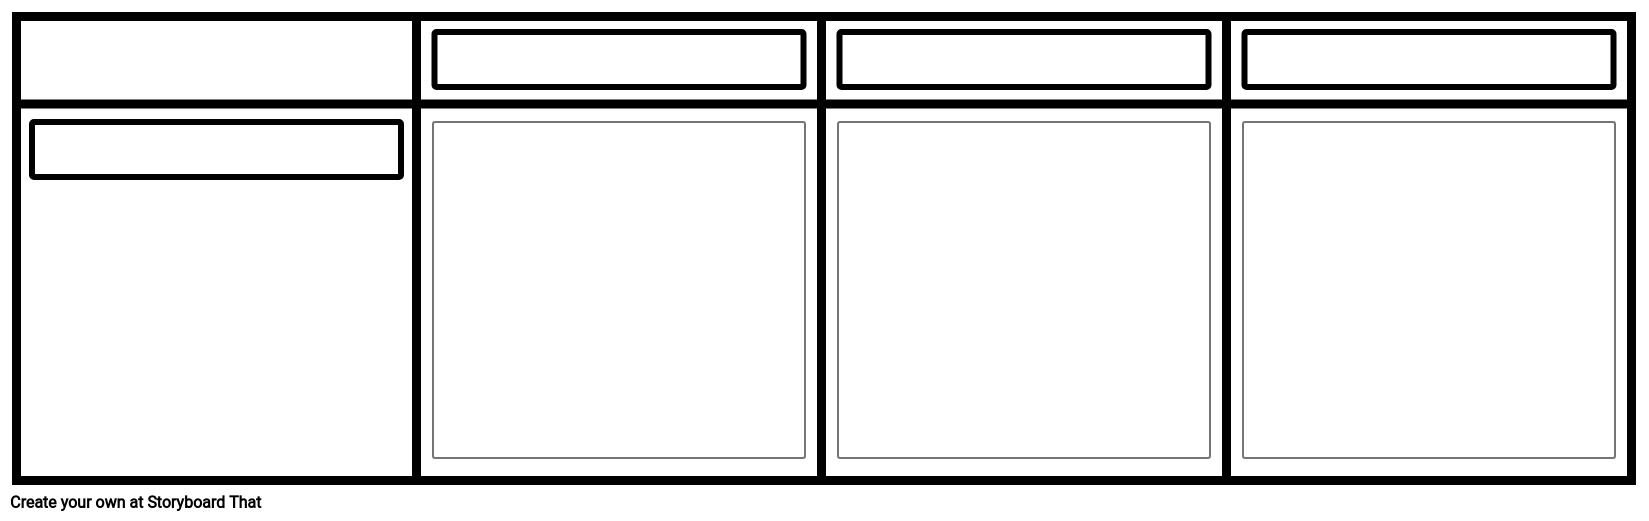 Blank Grid Storyboard for Film